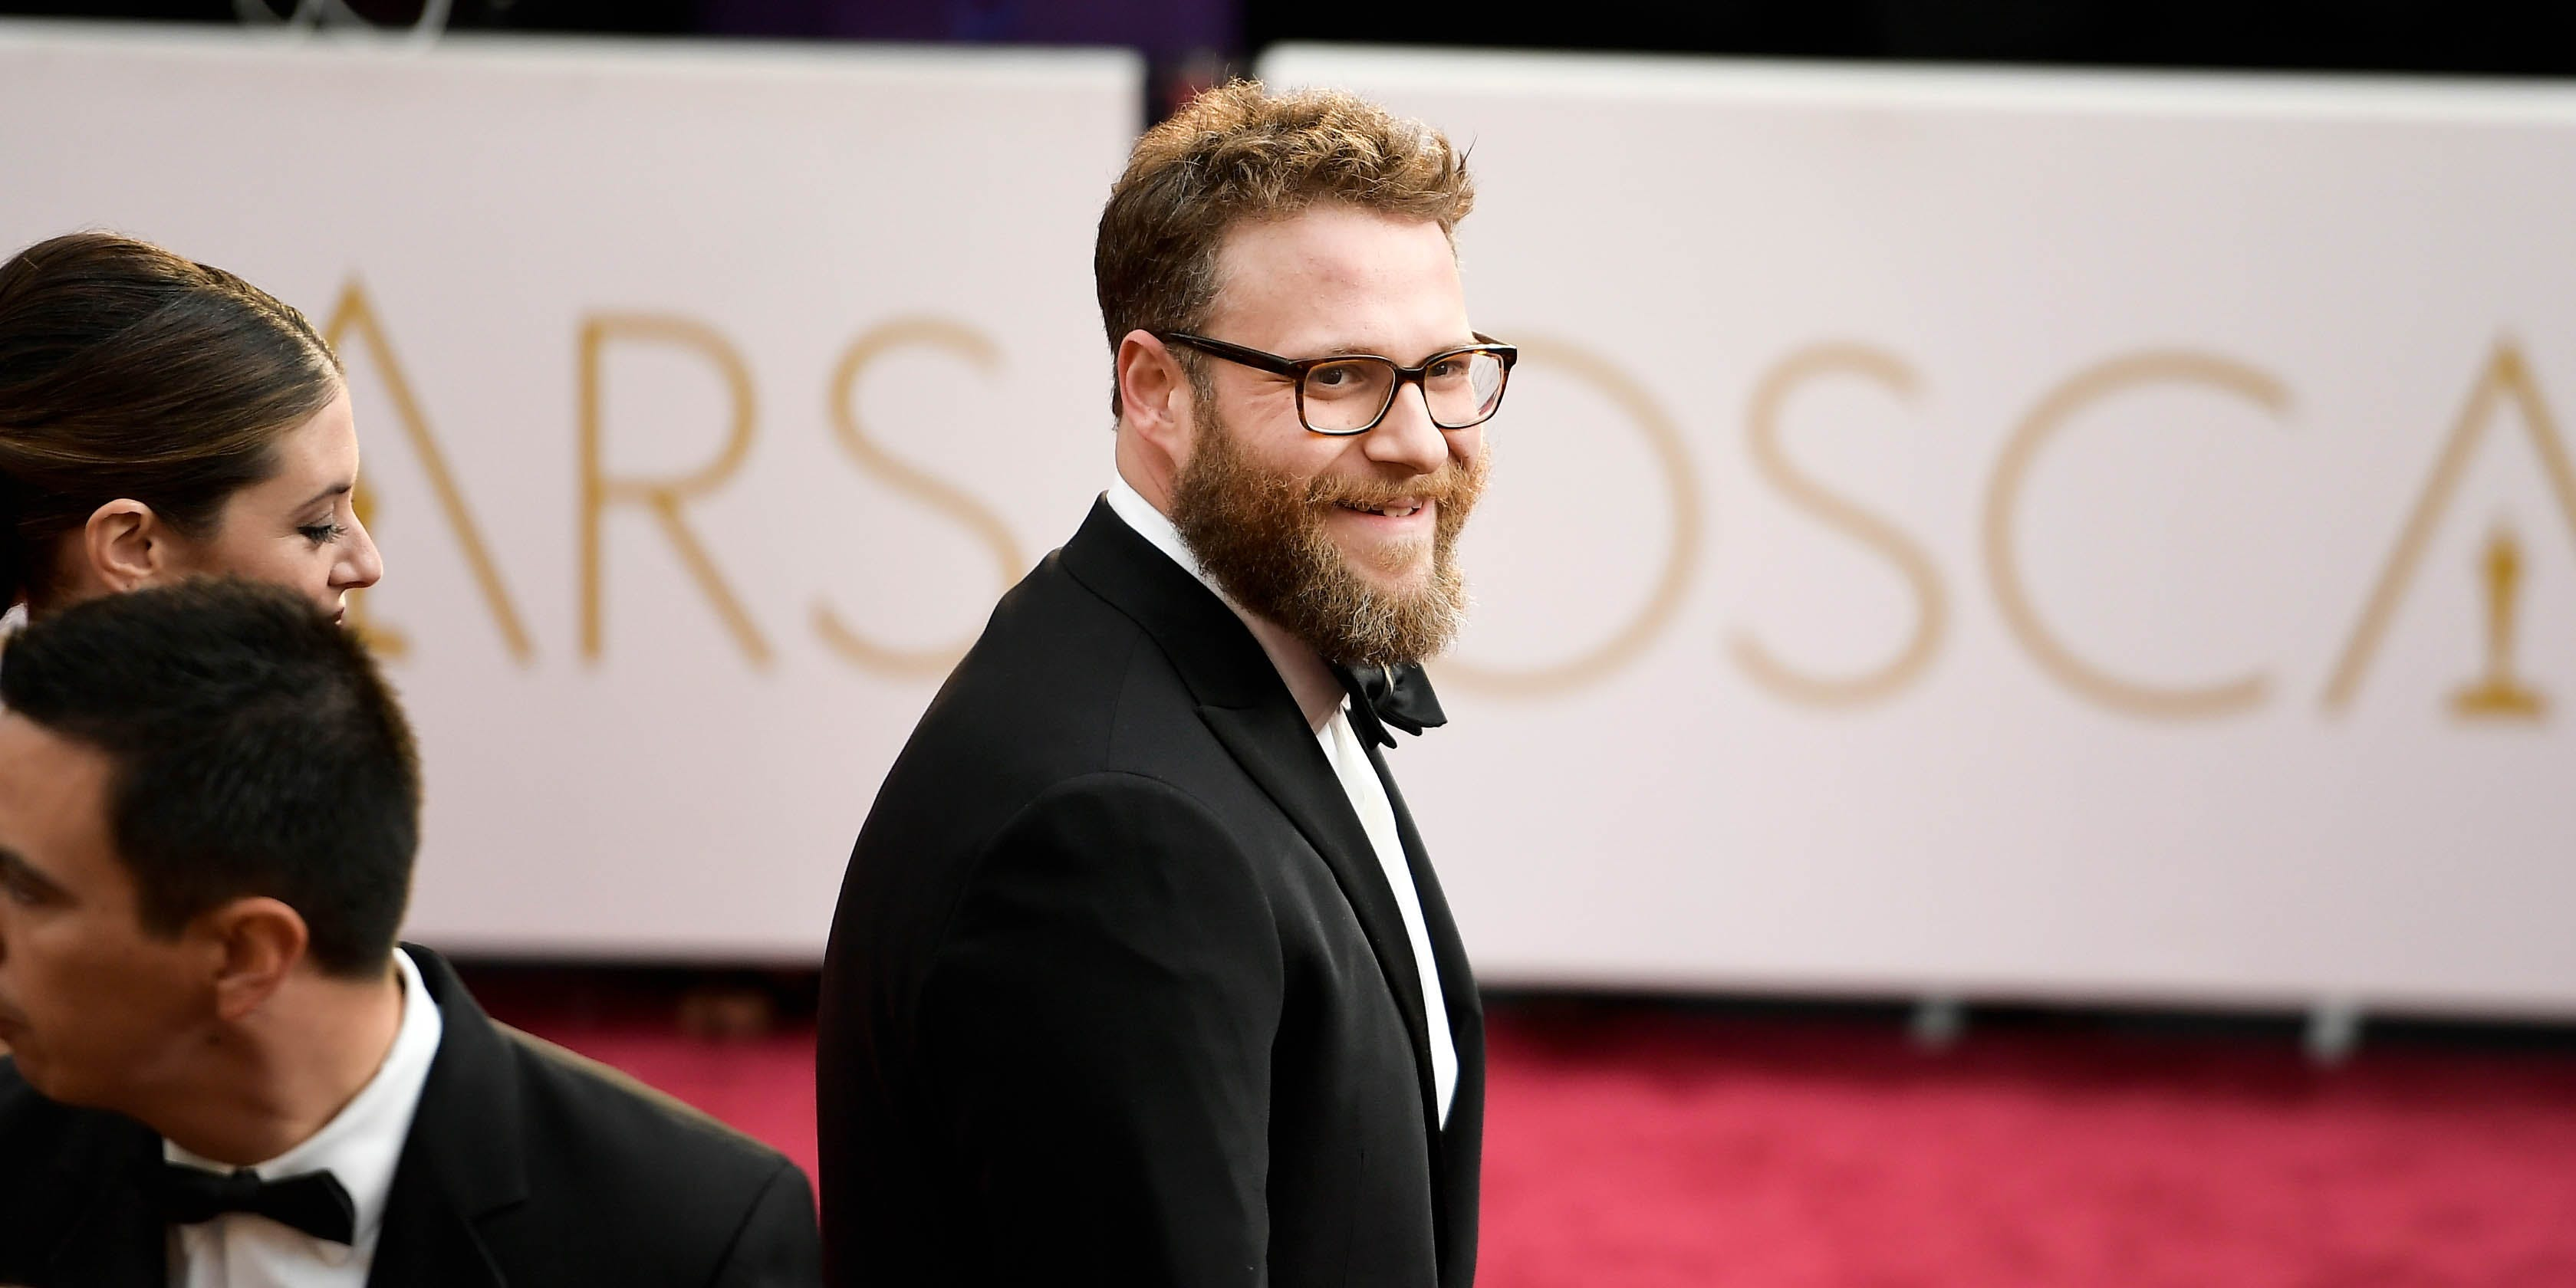 Comedian Seth Rogen attends the Academy Awards in Hollywood. But, he may have landed his most exciting role yet in Vancouver: voicing the city's SkyTrain announcements.